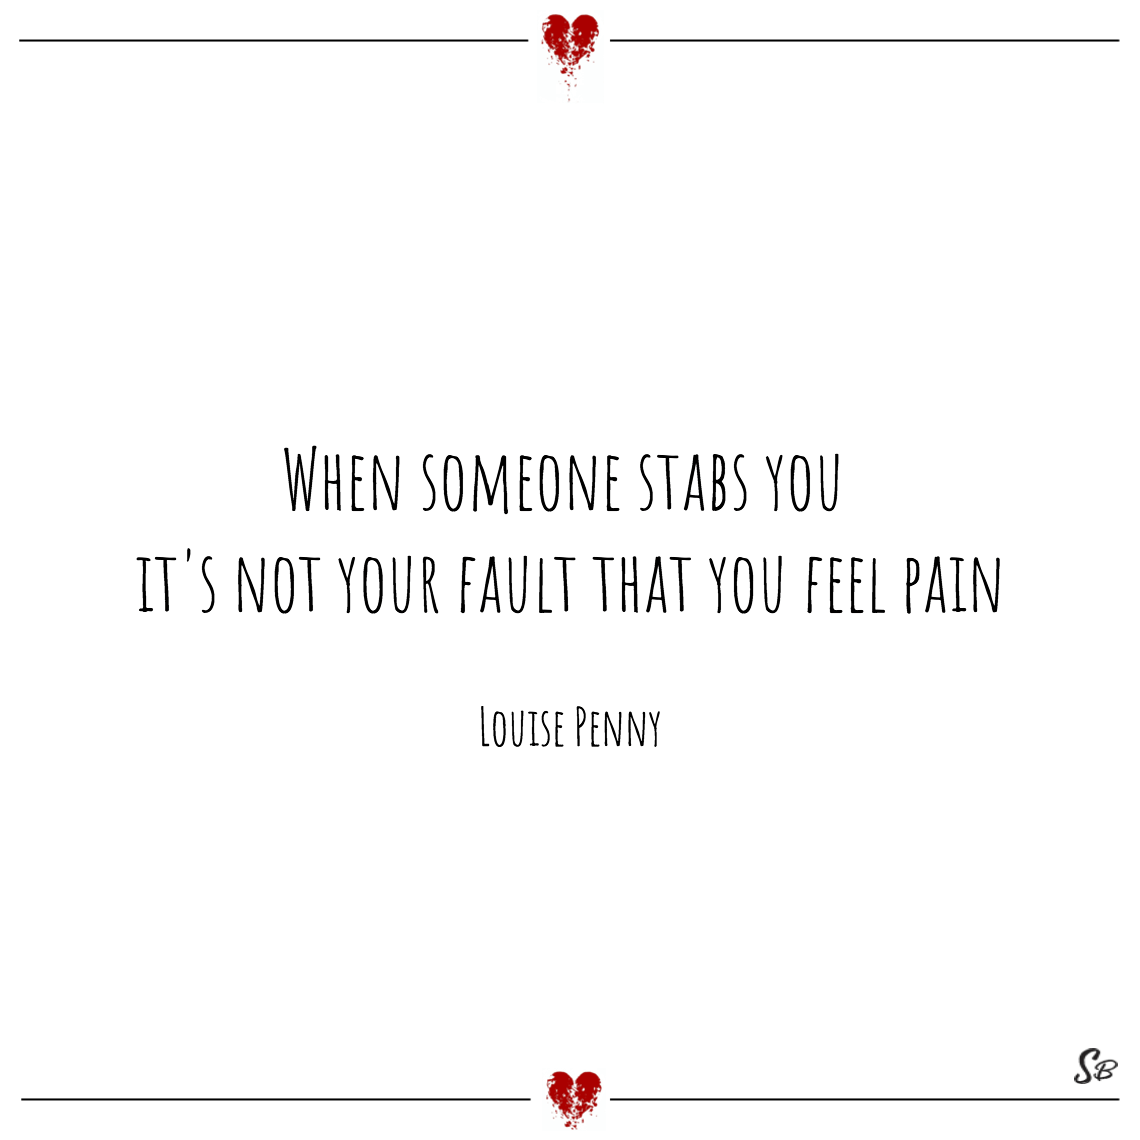 When someone stabs you it's not your fault that you feel pain louise penny